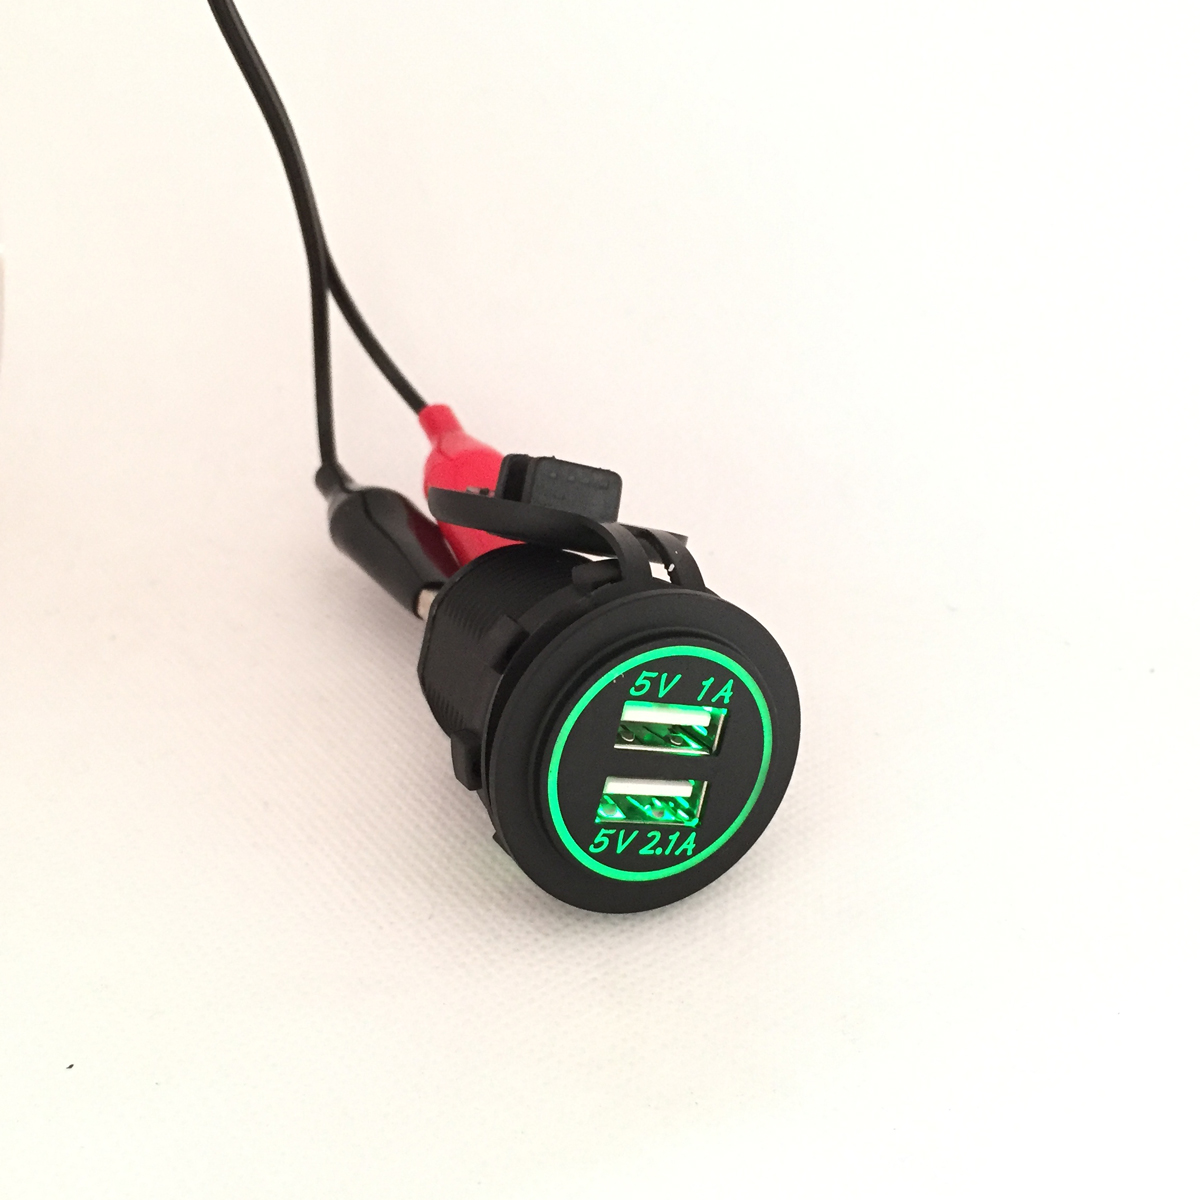 DIY 12V - 24V Dual USB Car Charger Power Outlet 1A & 2.1A for Ipad Iphone Car Boat Marine Mobile LED Light Blue Red Green Orange цены